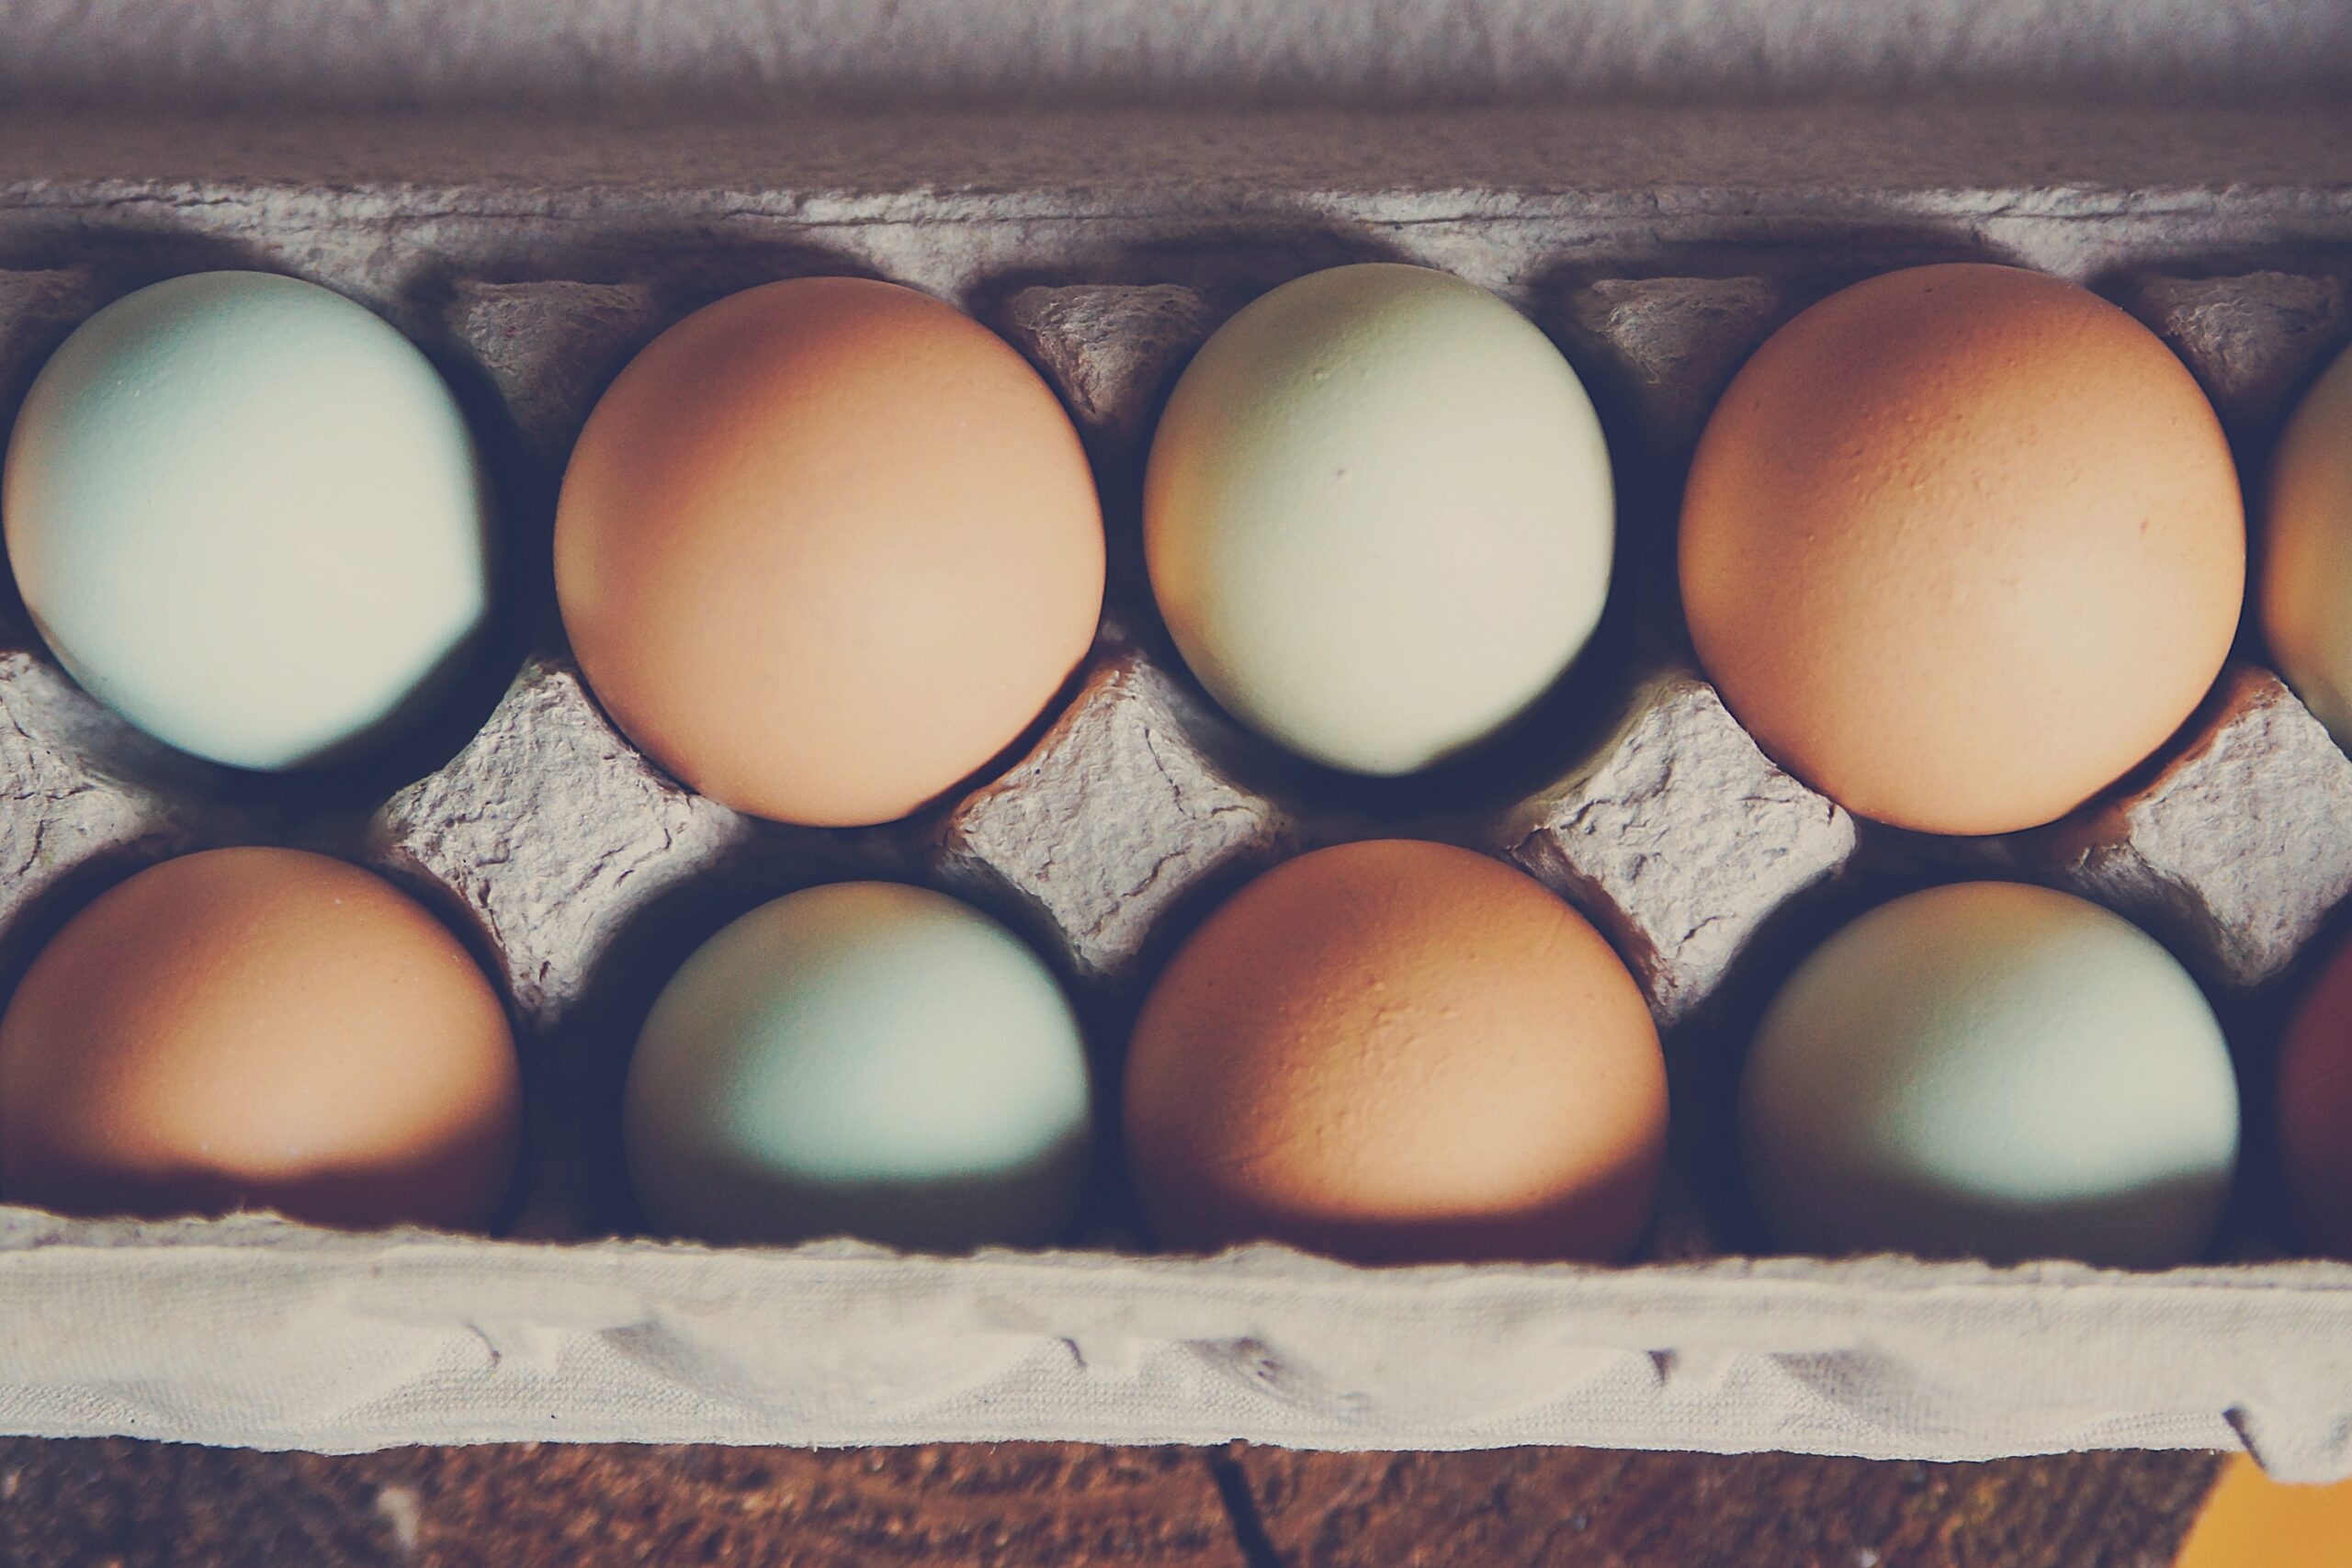 Are you the eggshell, the mine, or the foot?